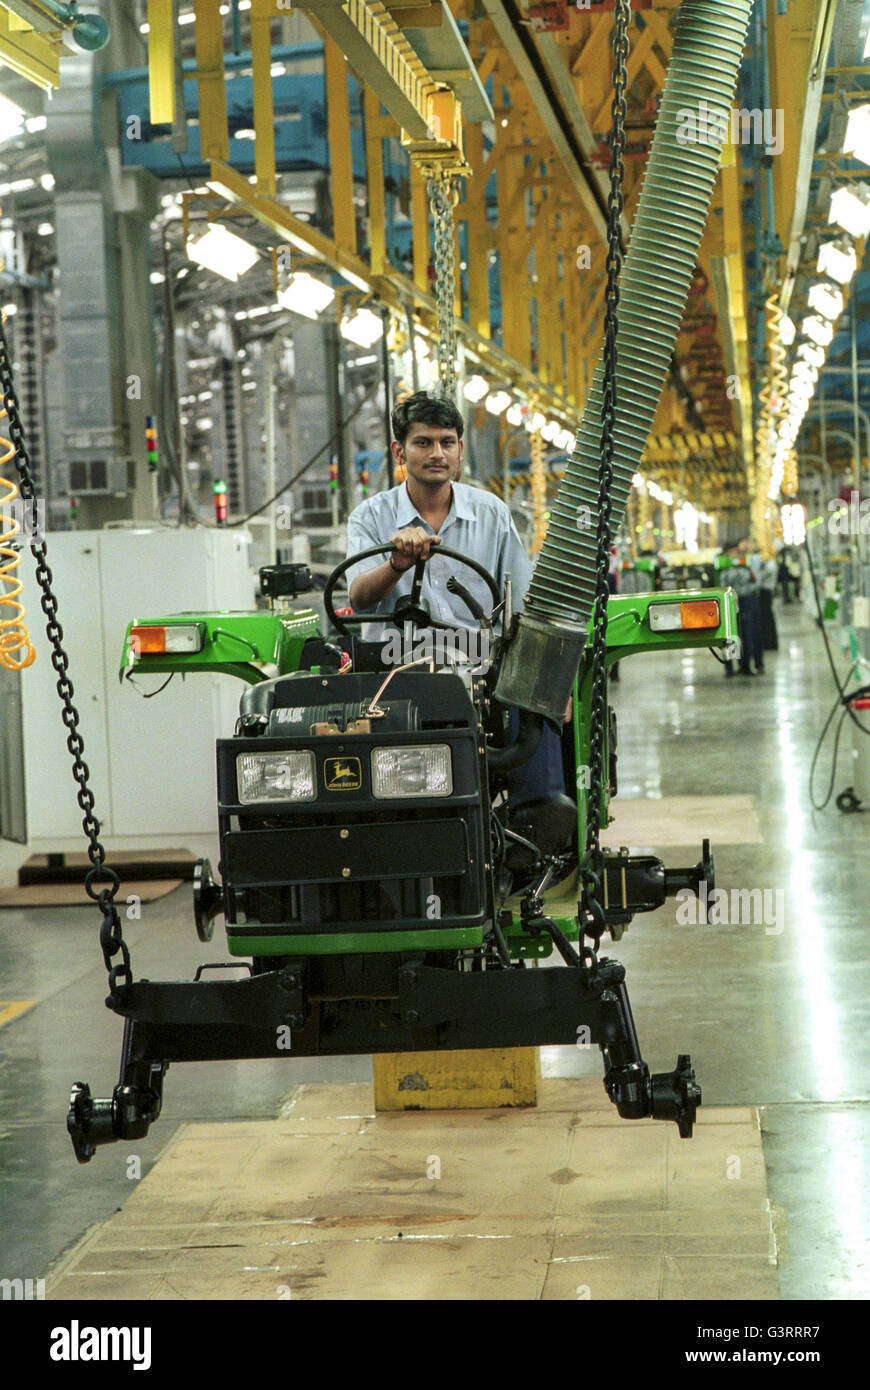 John Deere Assembly Line : India pune john deere tractor factory assembly line